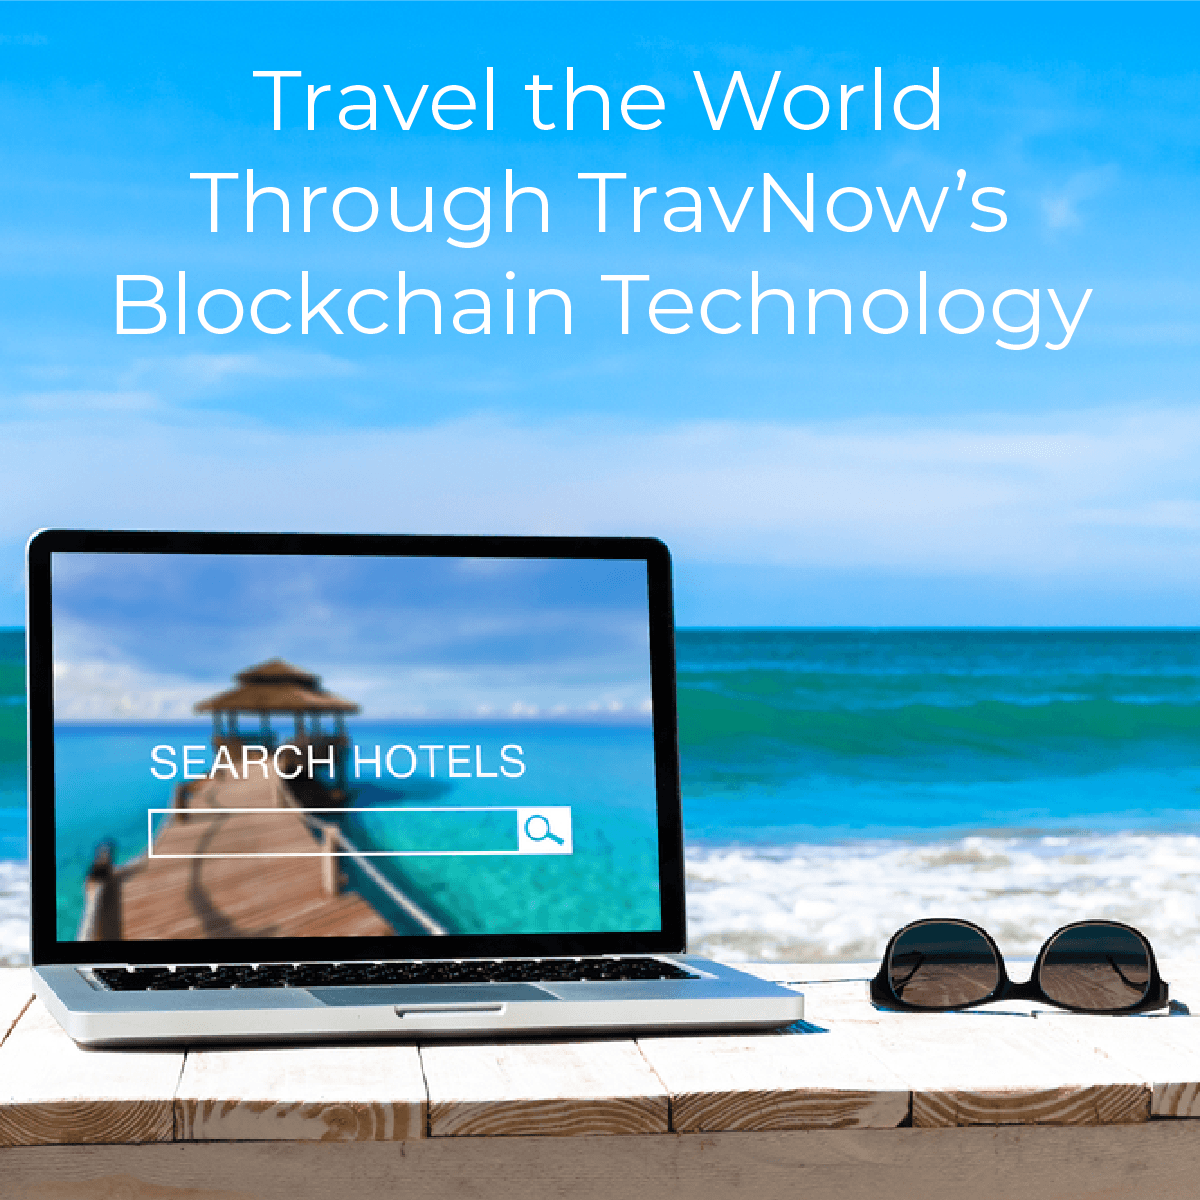 Travel_the_World_TravNow_Square-8.png